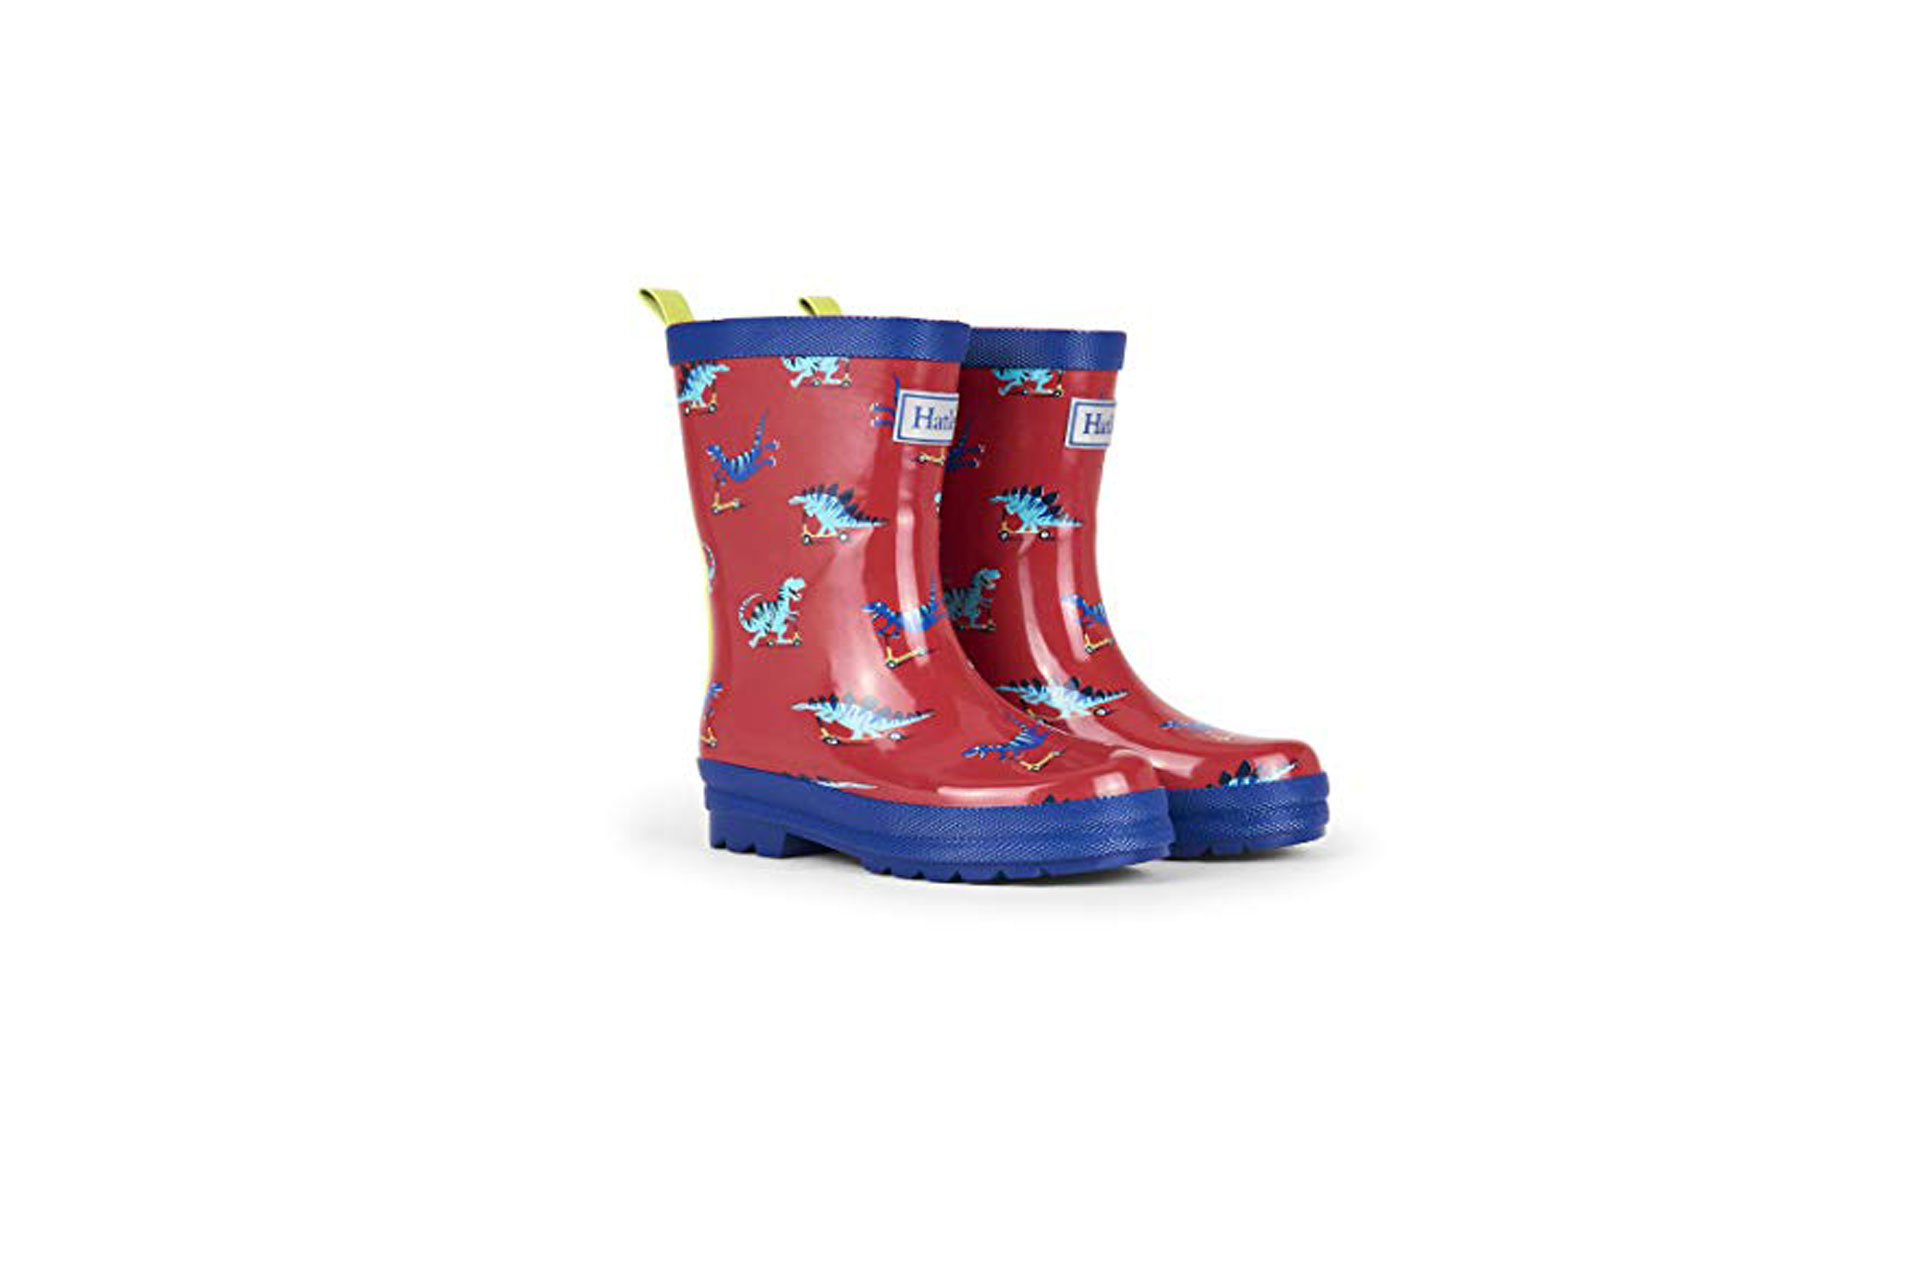 Kids Rain Boots; Courtesy of Amazon